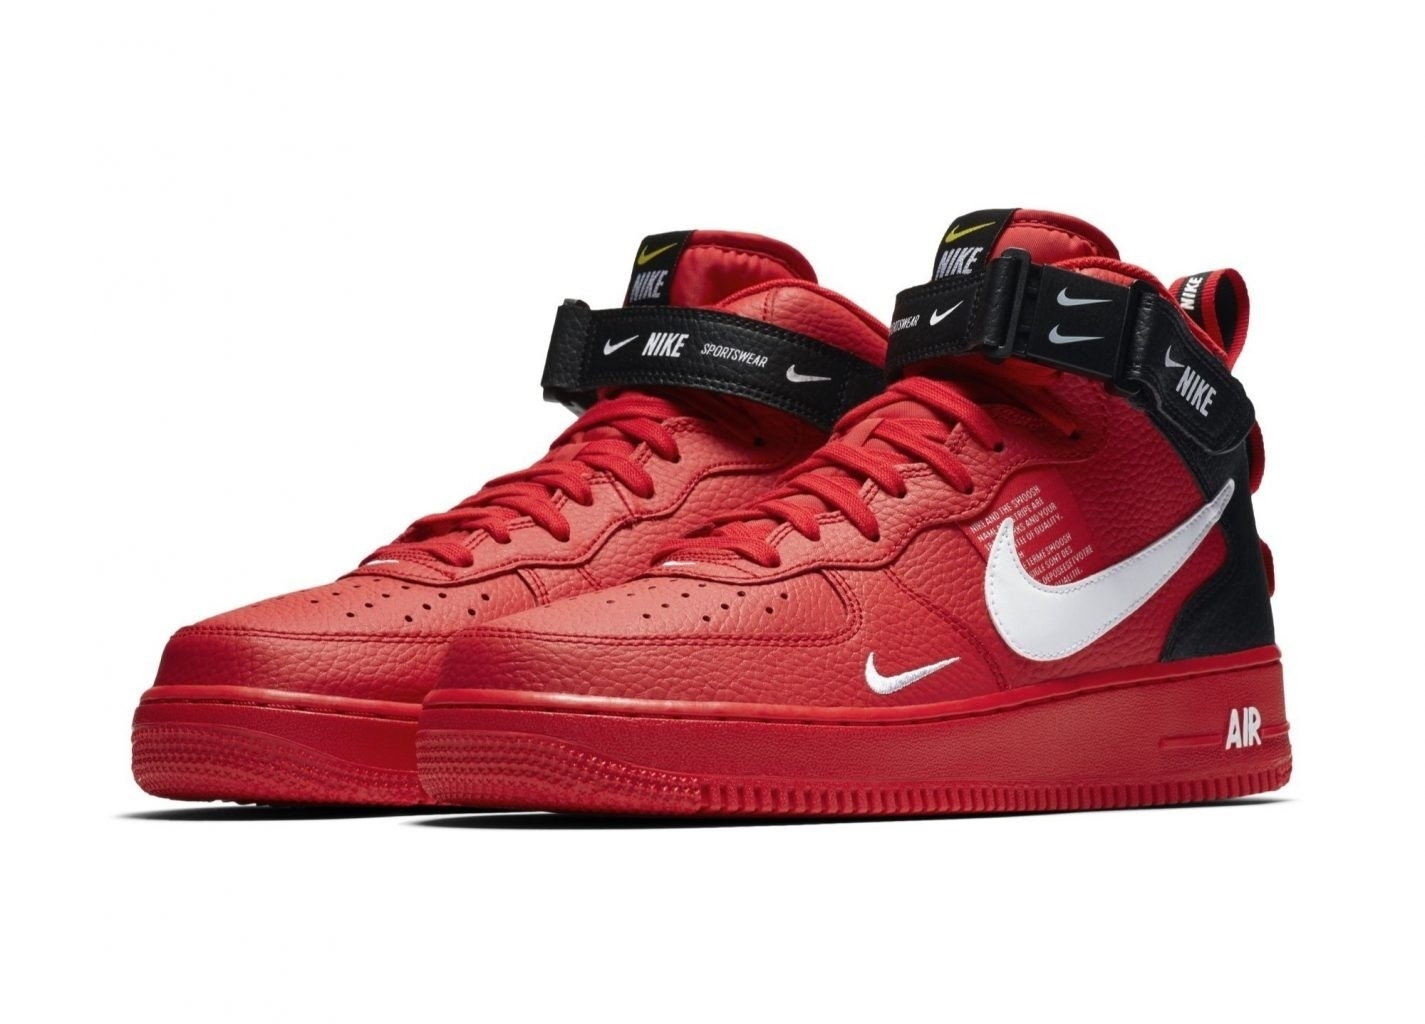 Nike Air Force 1 '07 Mid Utility High Red/Black (065)